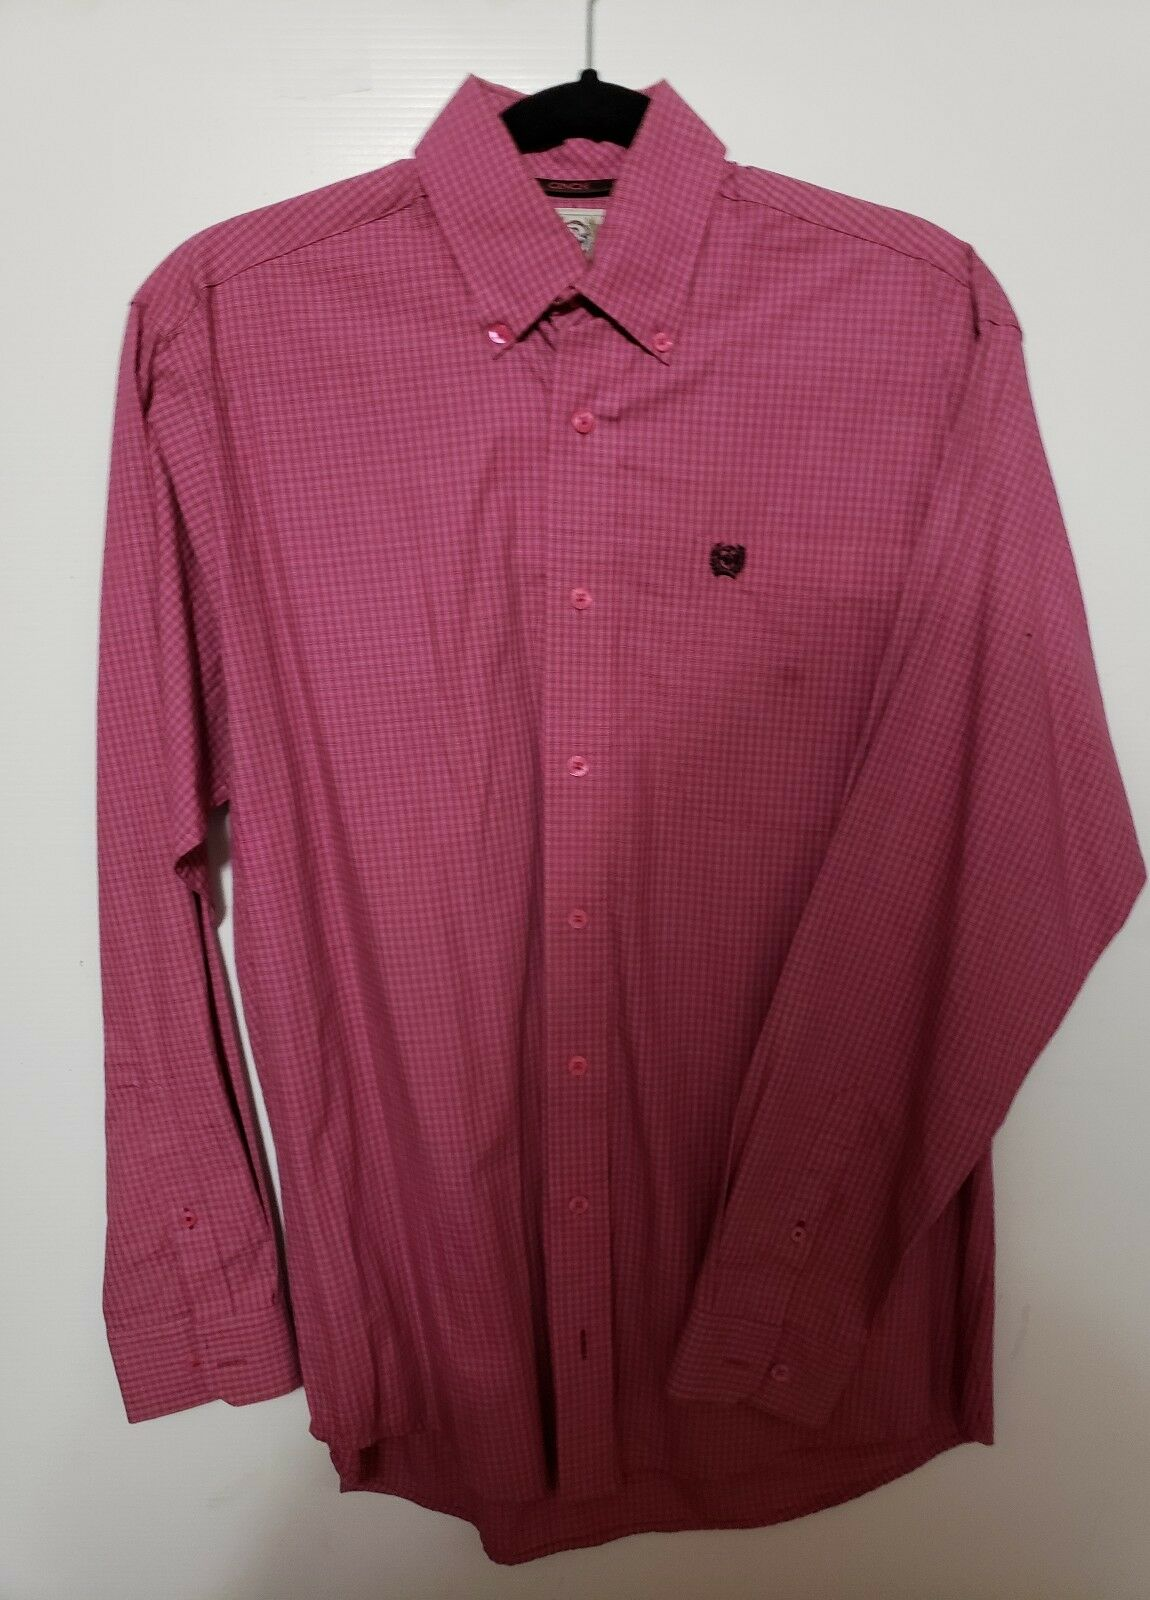 Mens Cinch Shirt size Extra Small nwot very nice